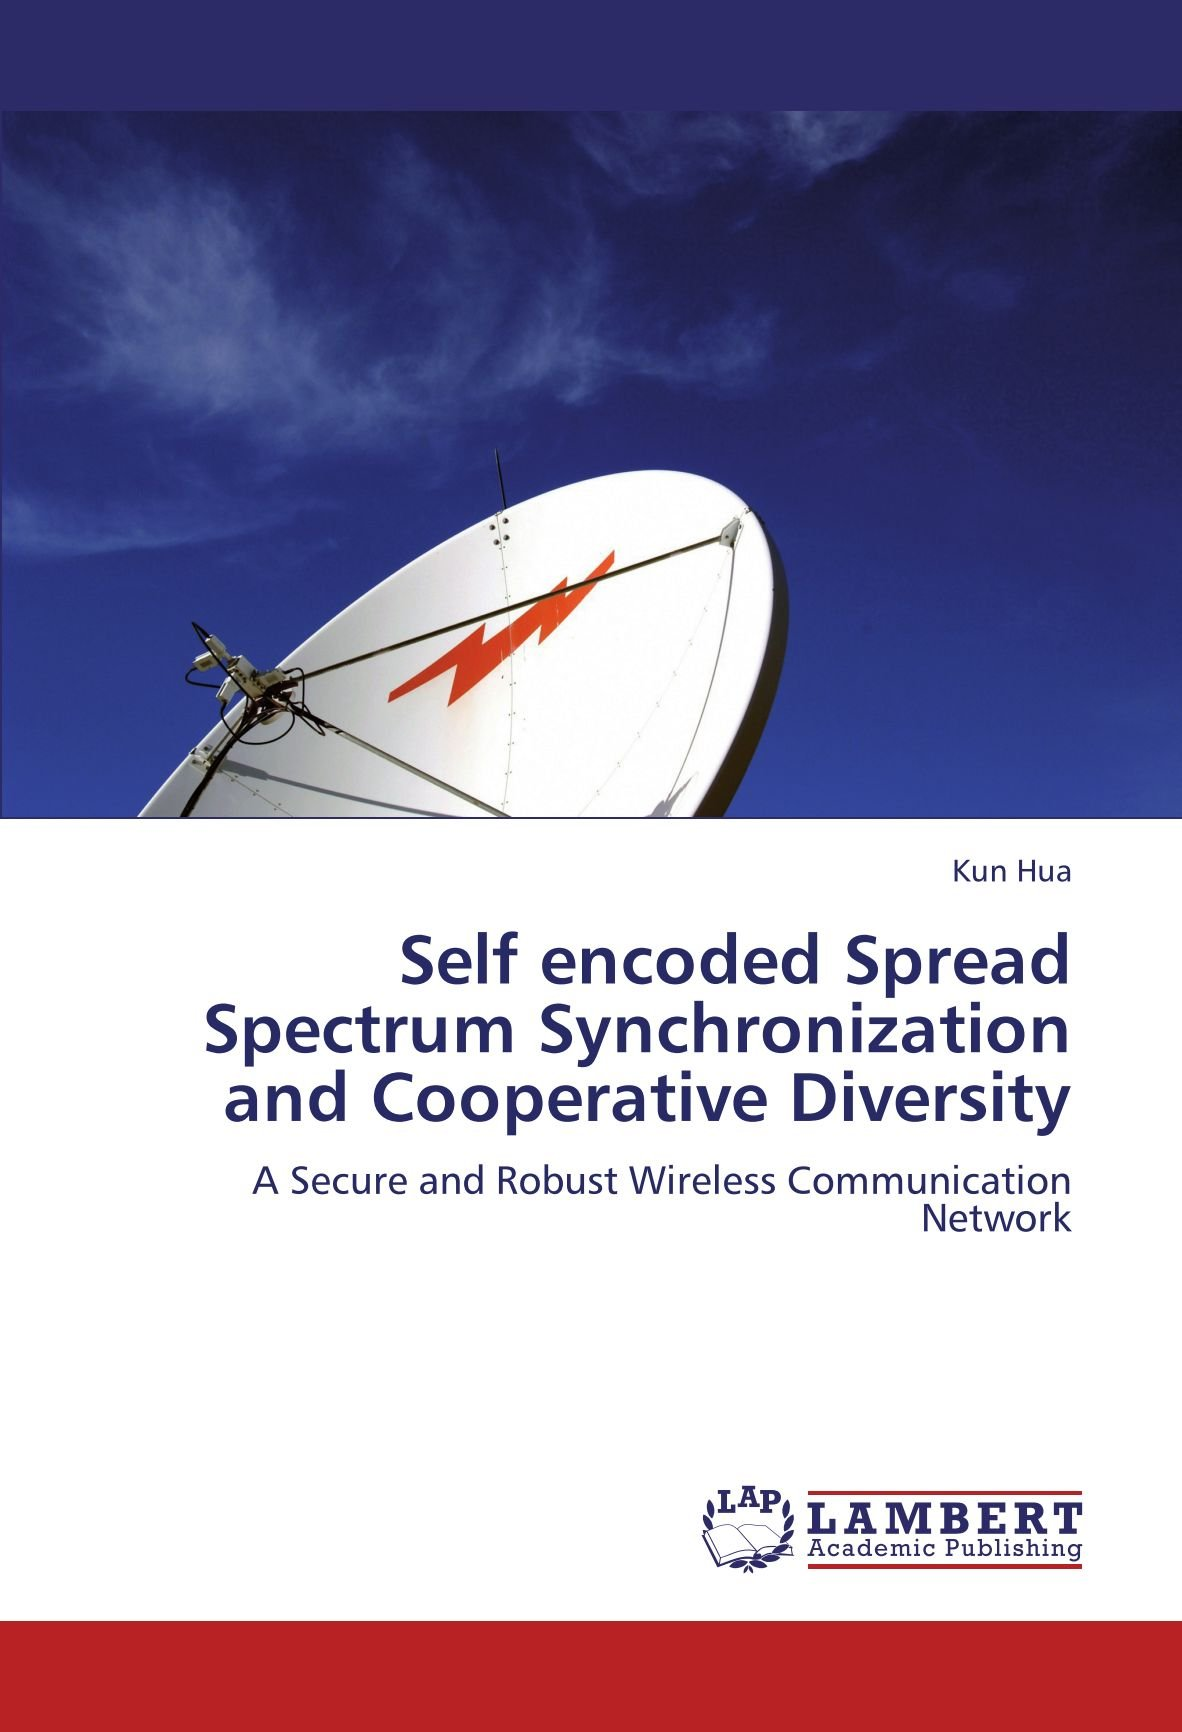 Self encoded Spread Spectrum Synchronization and Cooperative Diversity: A Secure and Robust Wireless Communication Network PDF